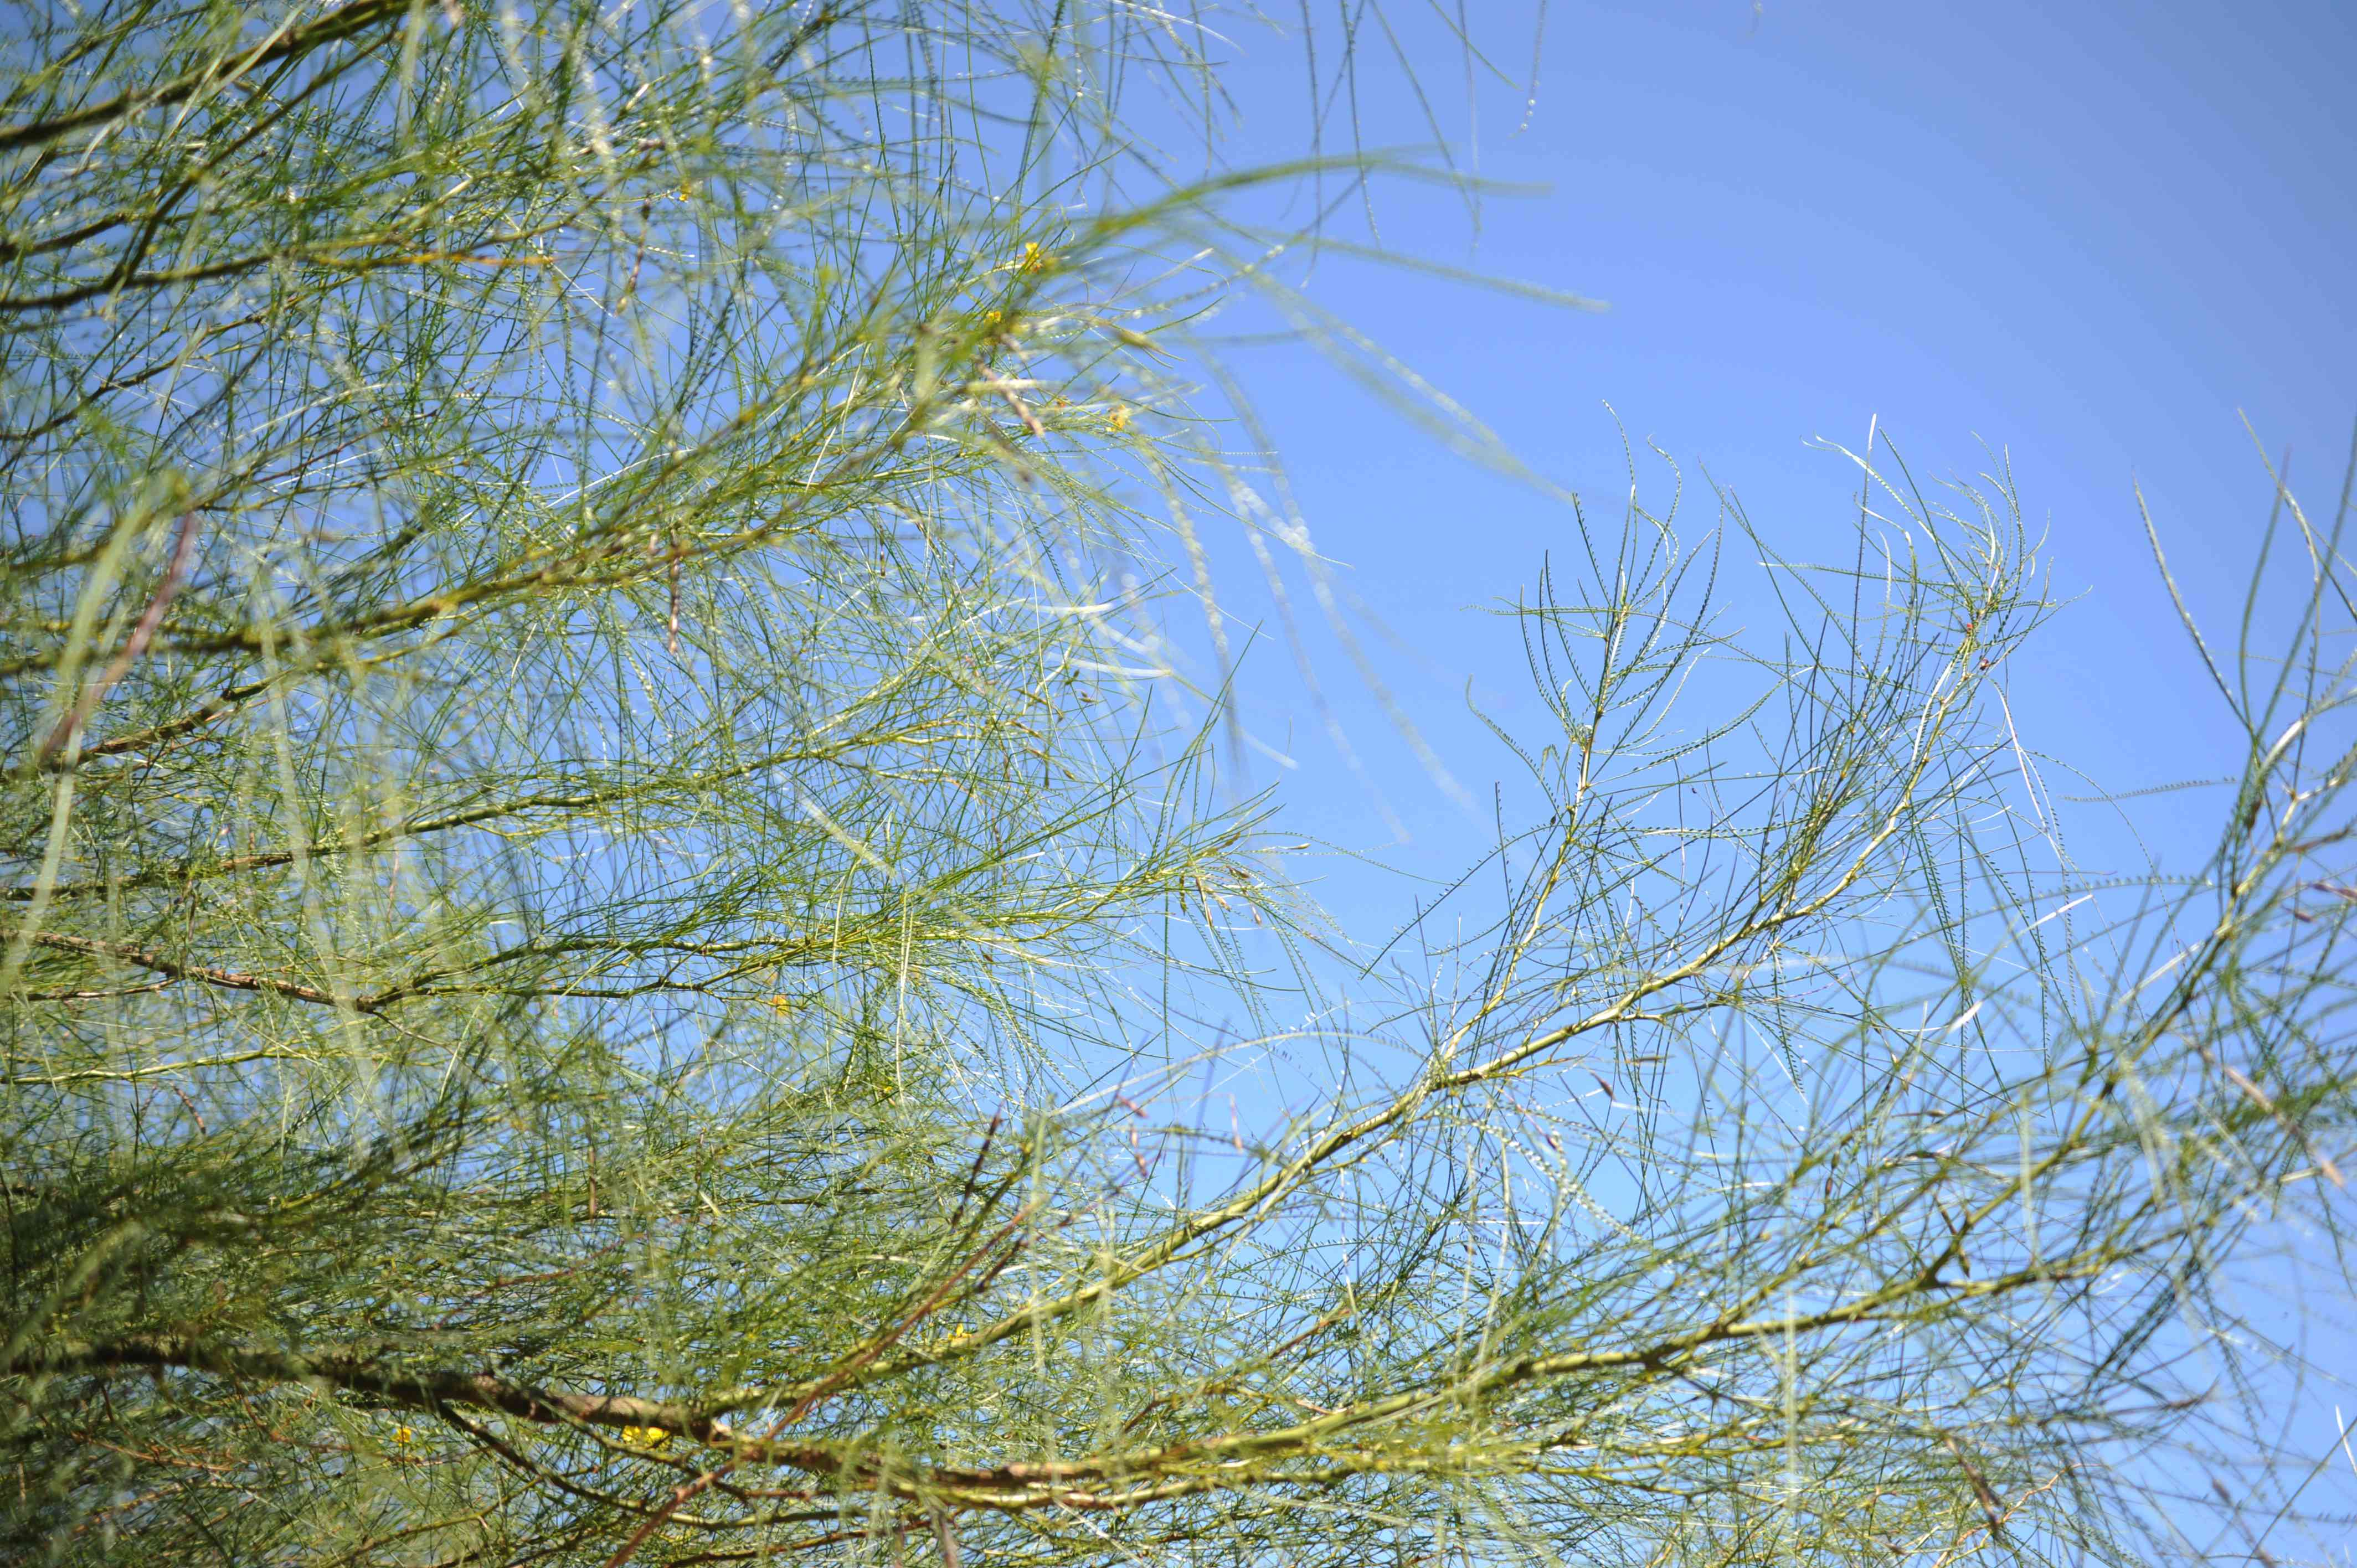 Palo verde tree branches with long and thin pinnate branches against blue sky